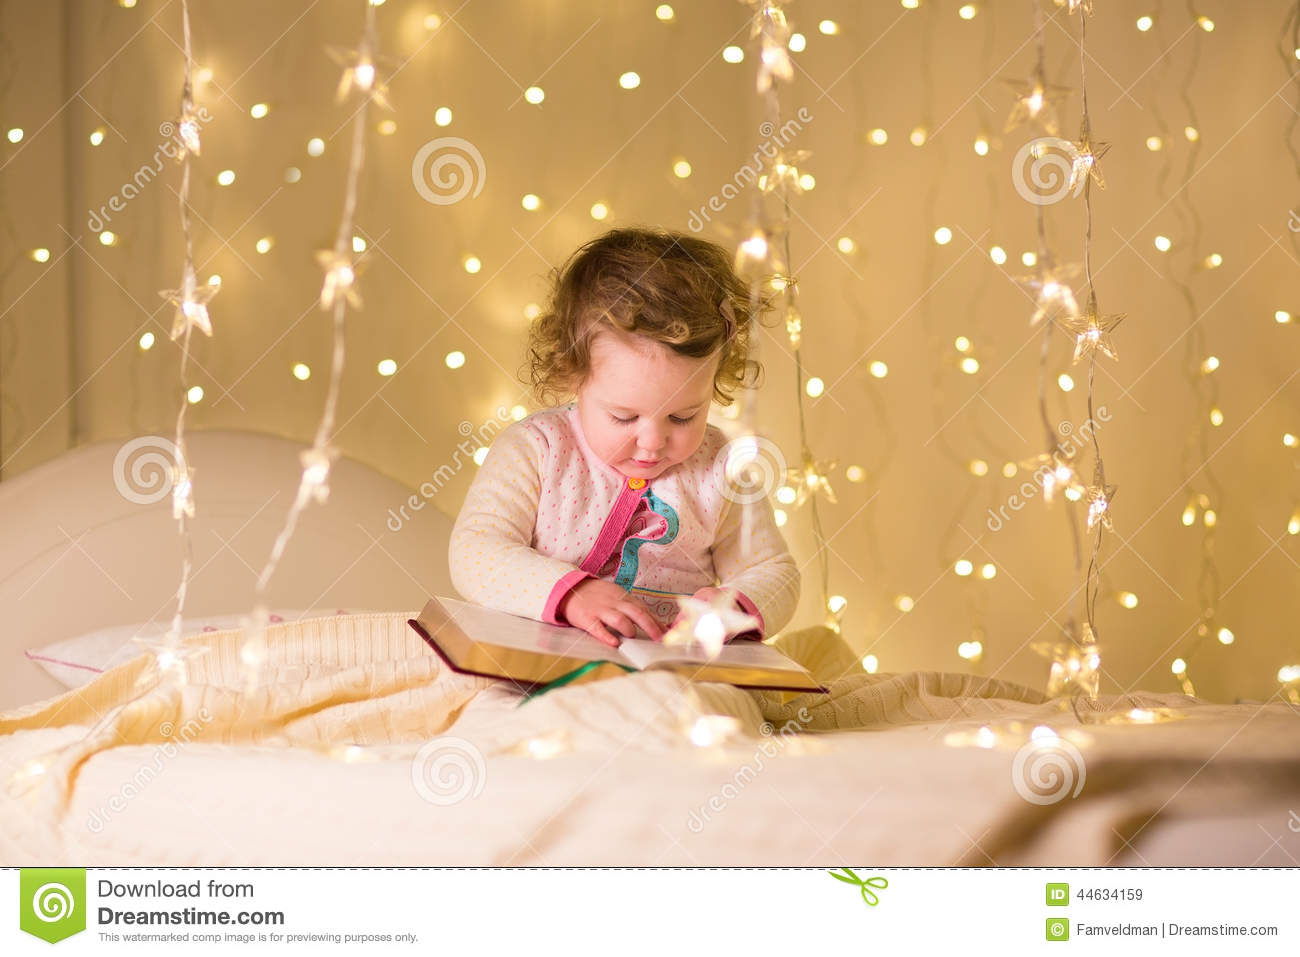 Cute little toddler girl reading book in dark room with Christmas lights